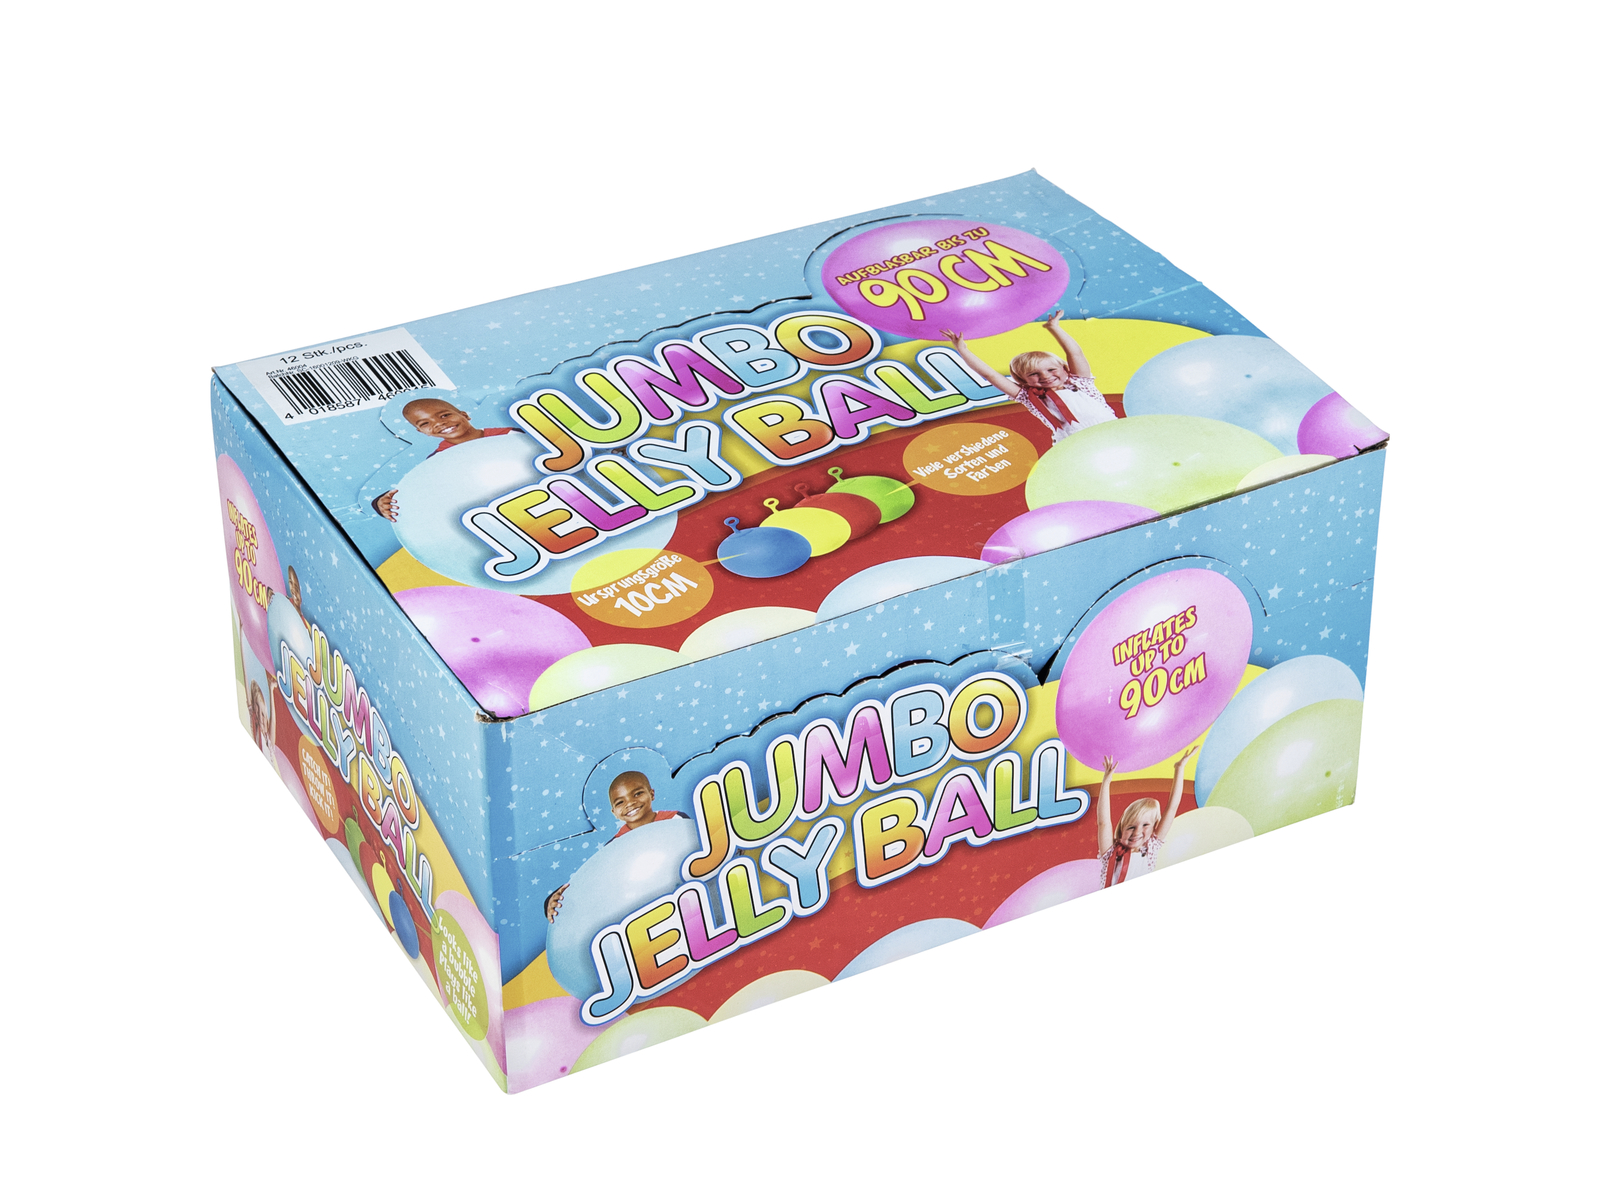 ACCESSORIO Jumbo Jelly Ball, 9